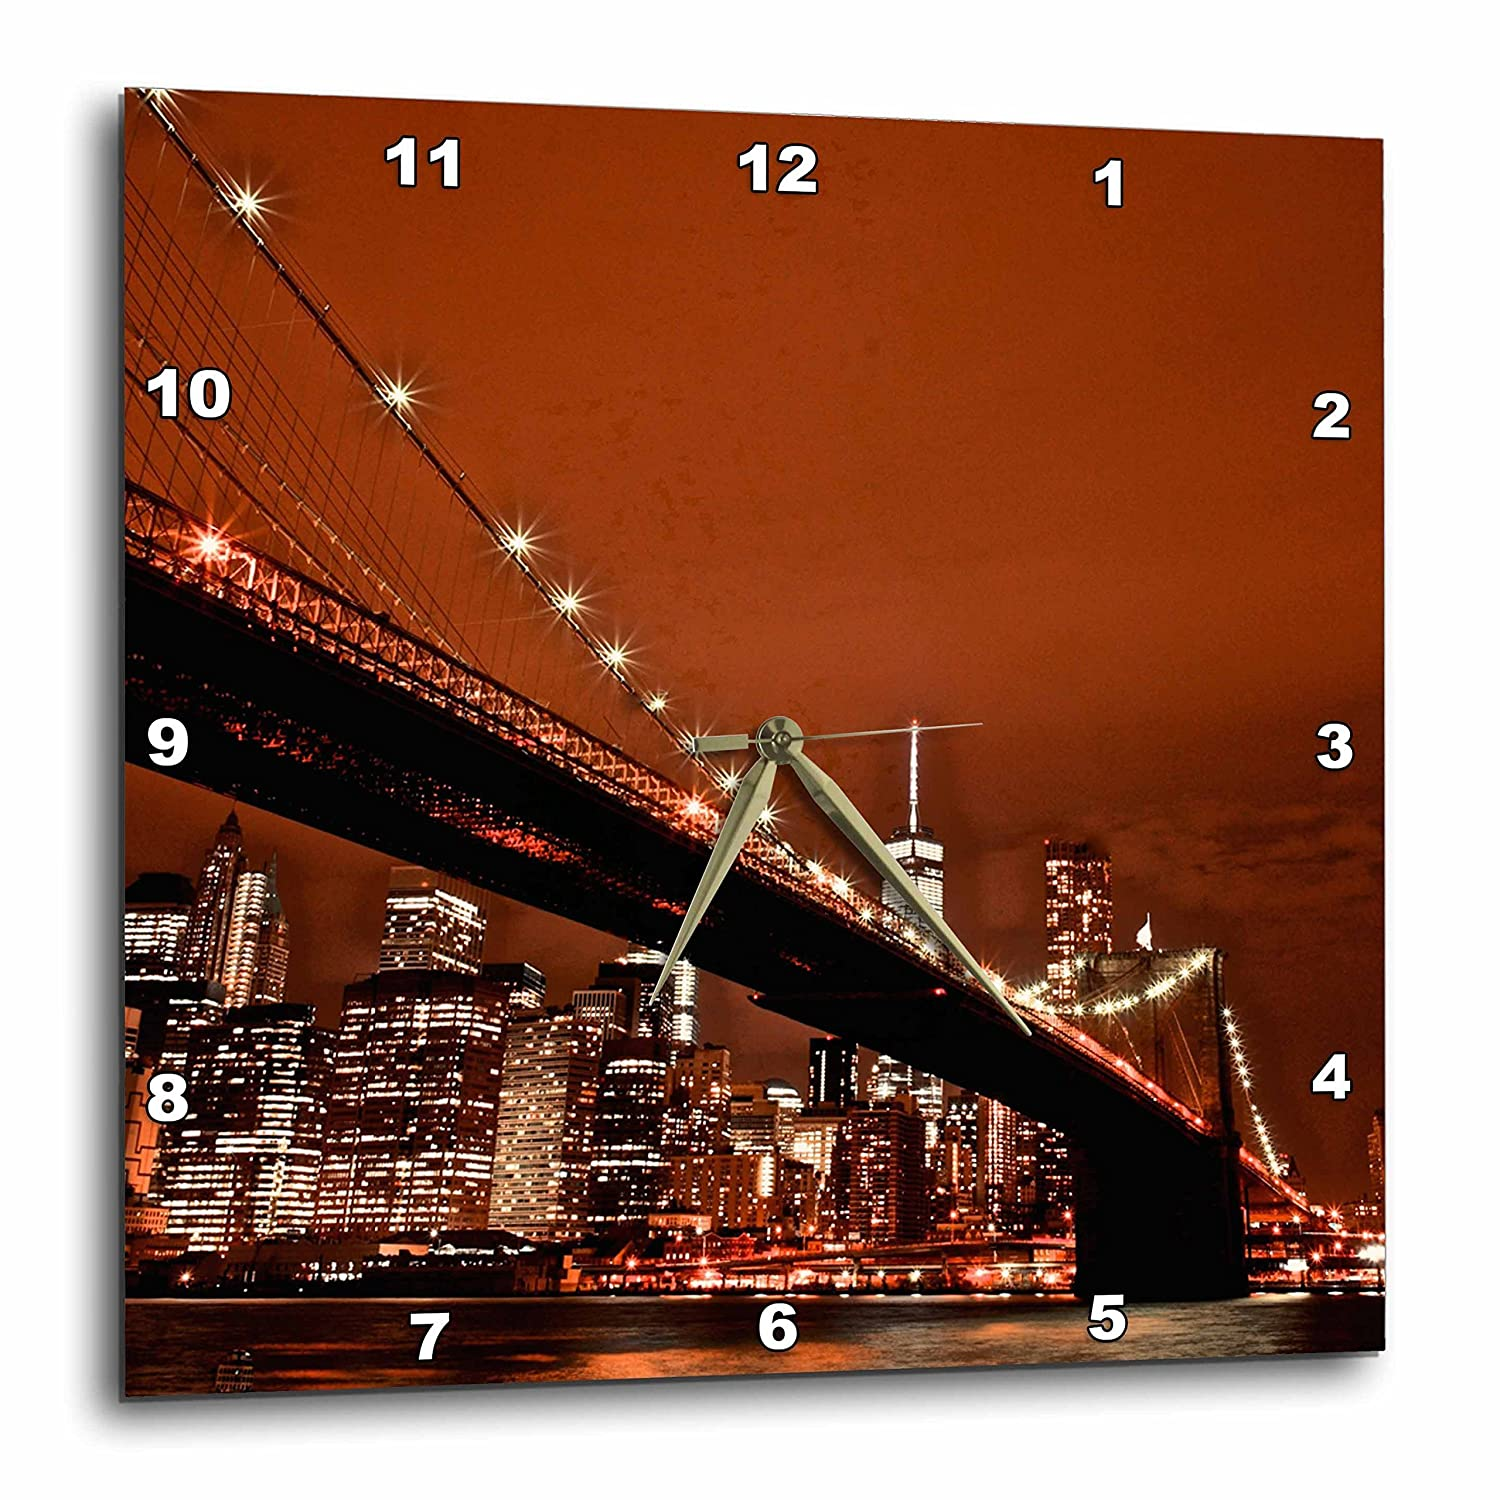 Wall Clock DPP/_219797/_2 13 by 13 3dRose New York Scene of The Brooklyn Bridge and Manhattan Skyline at Night